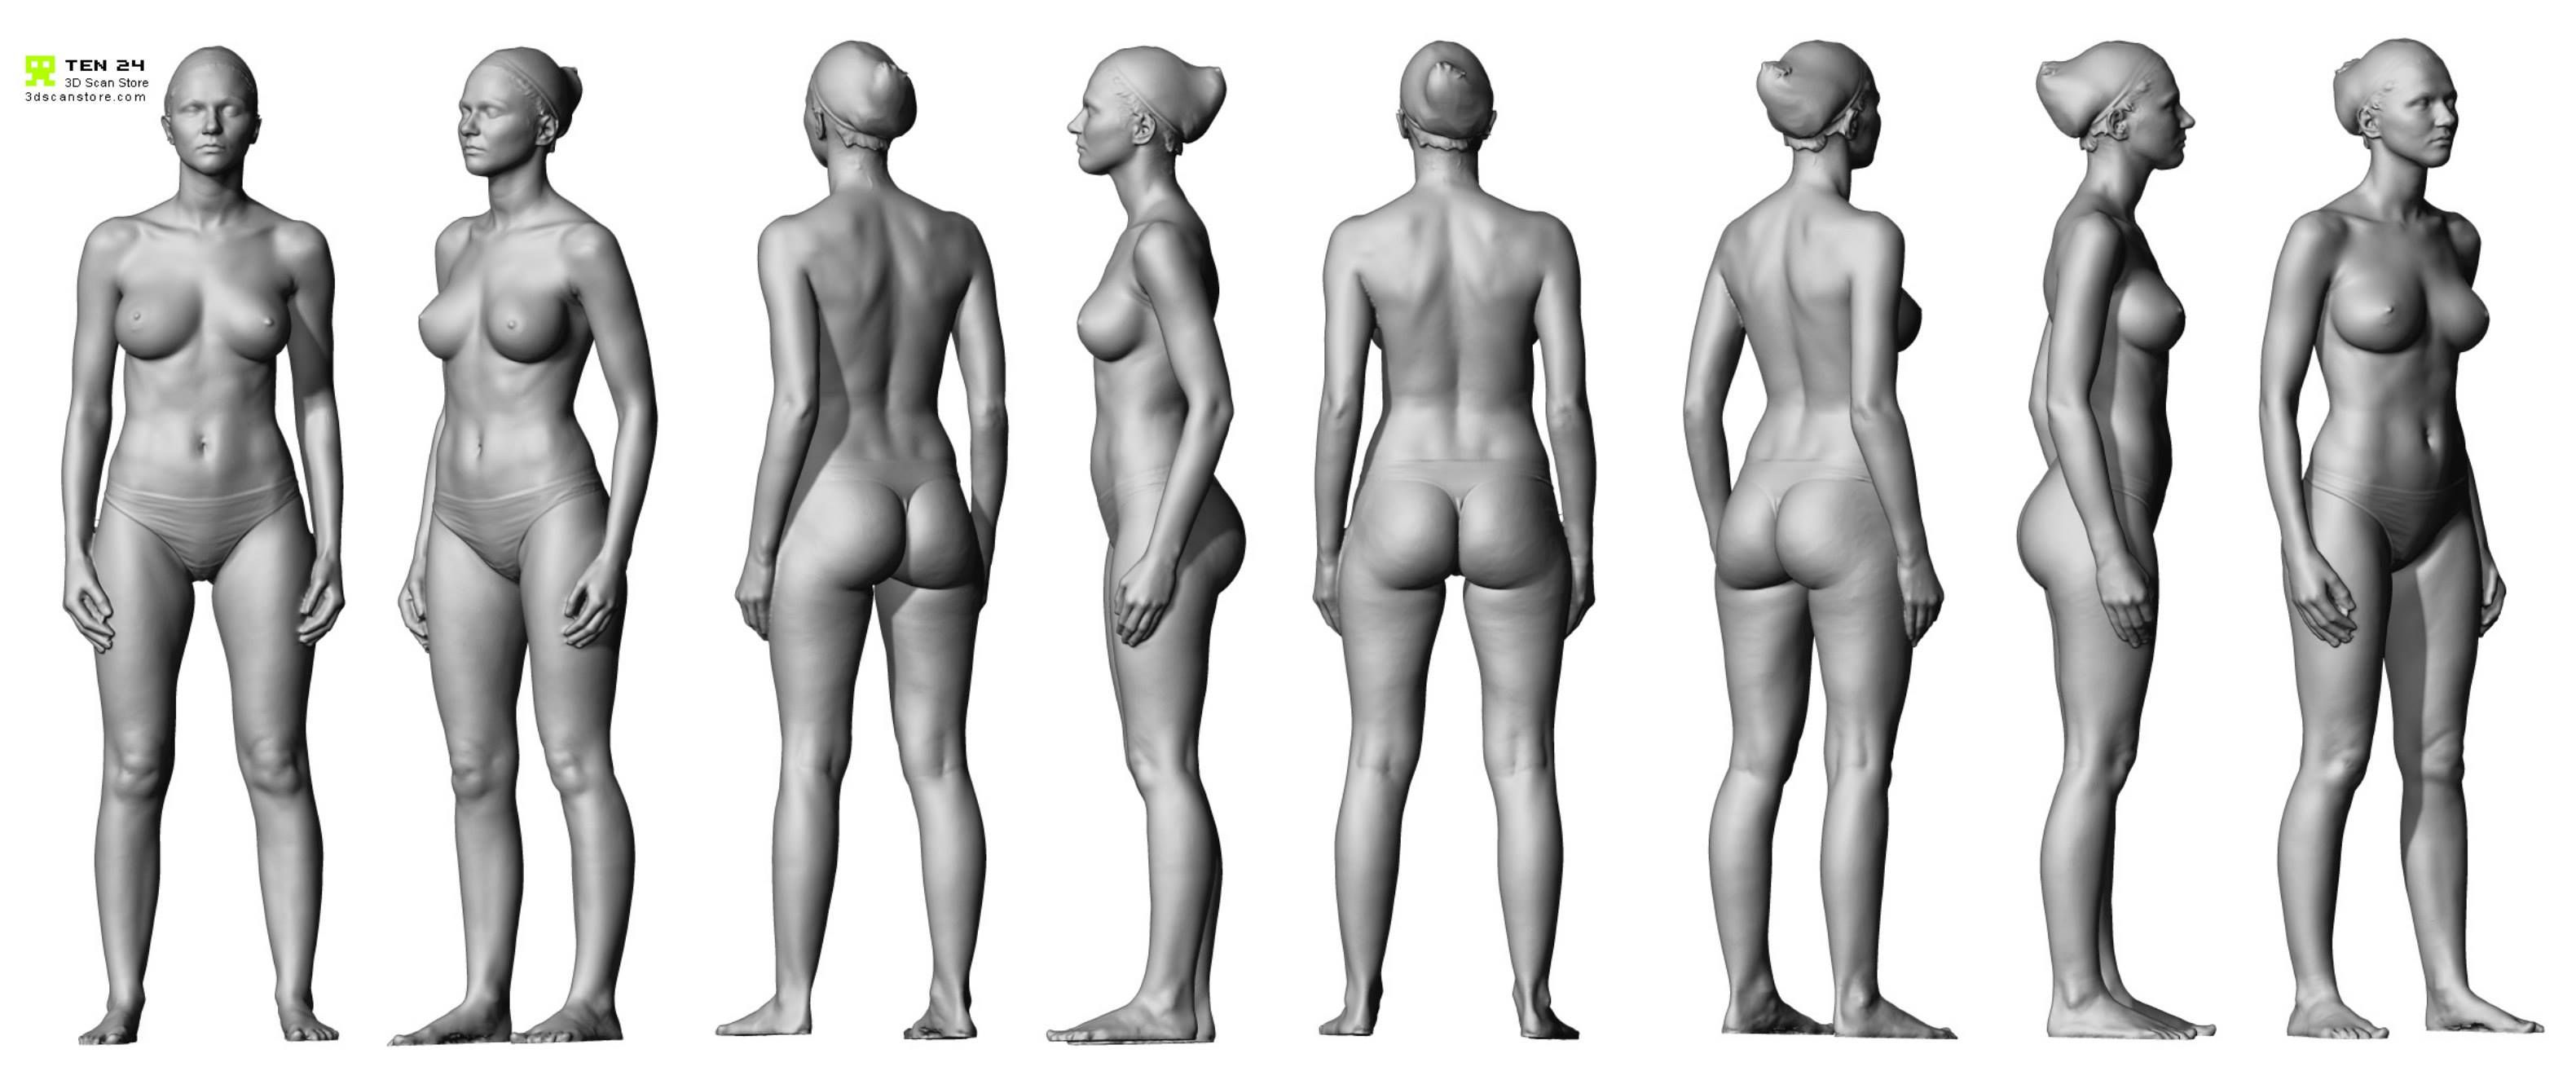 Figure ref | Scan | Pinterest | Anatomy, Anatomy reference and ...